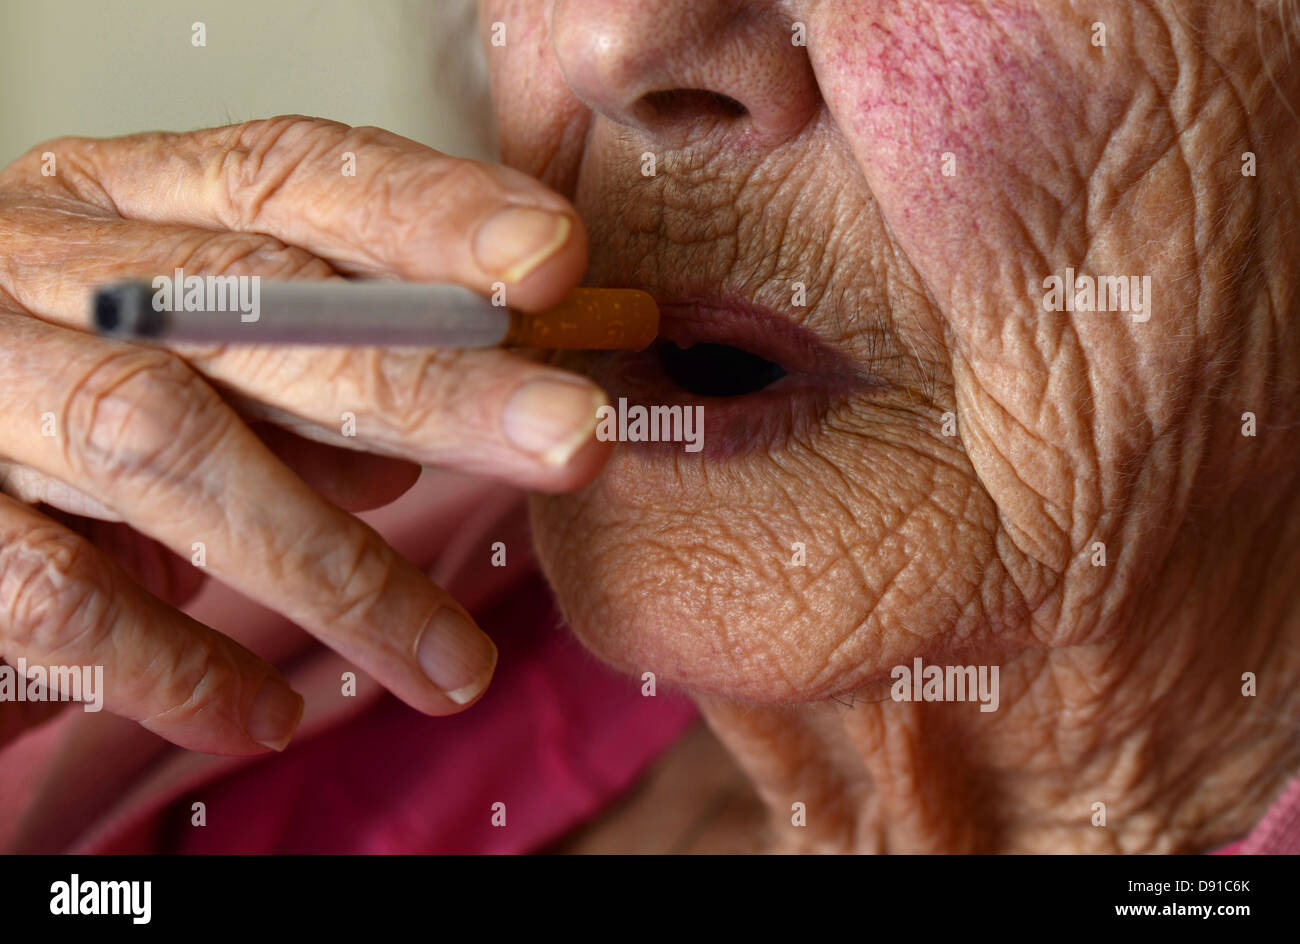 Old woman smoking, elderly woman smoker with a cigarette, elderly lady smoking - Stock Image